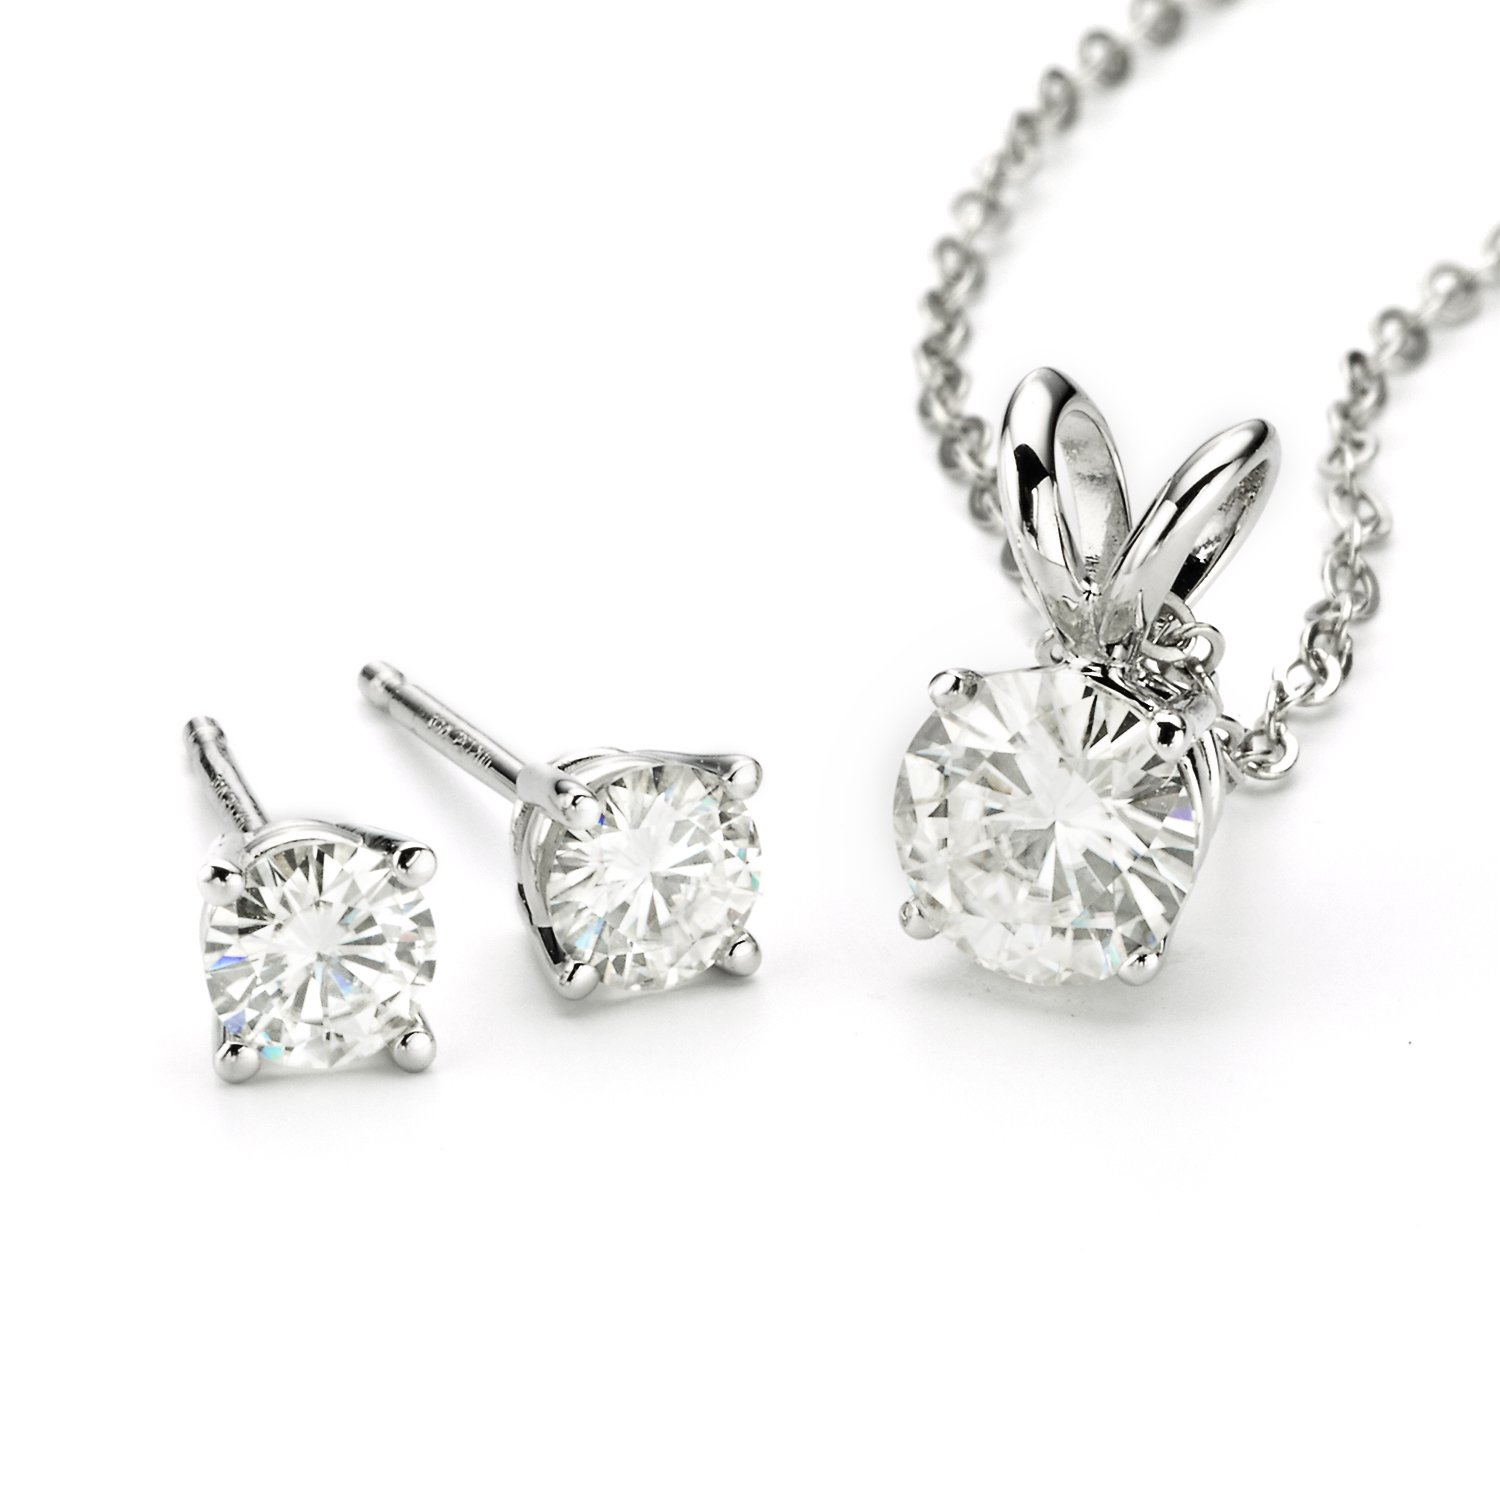 Forever Classic Moissanite Earrings and Pendant Necklace Set By Charles & Colvard by Charles & Colvard